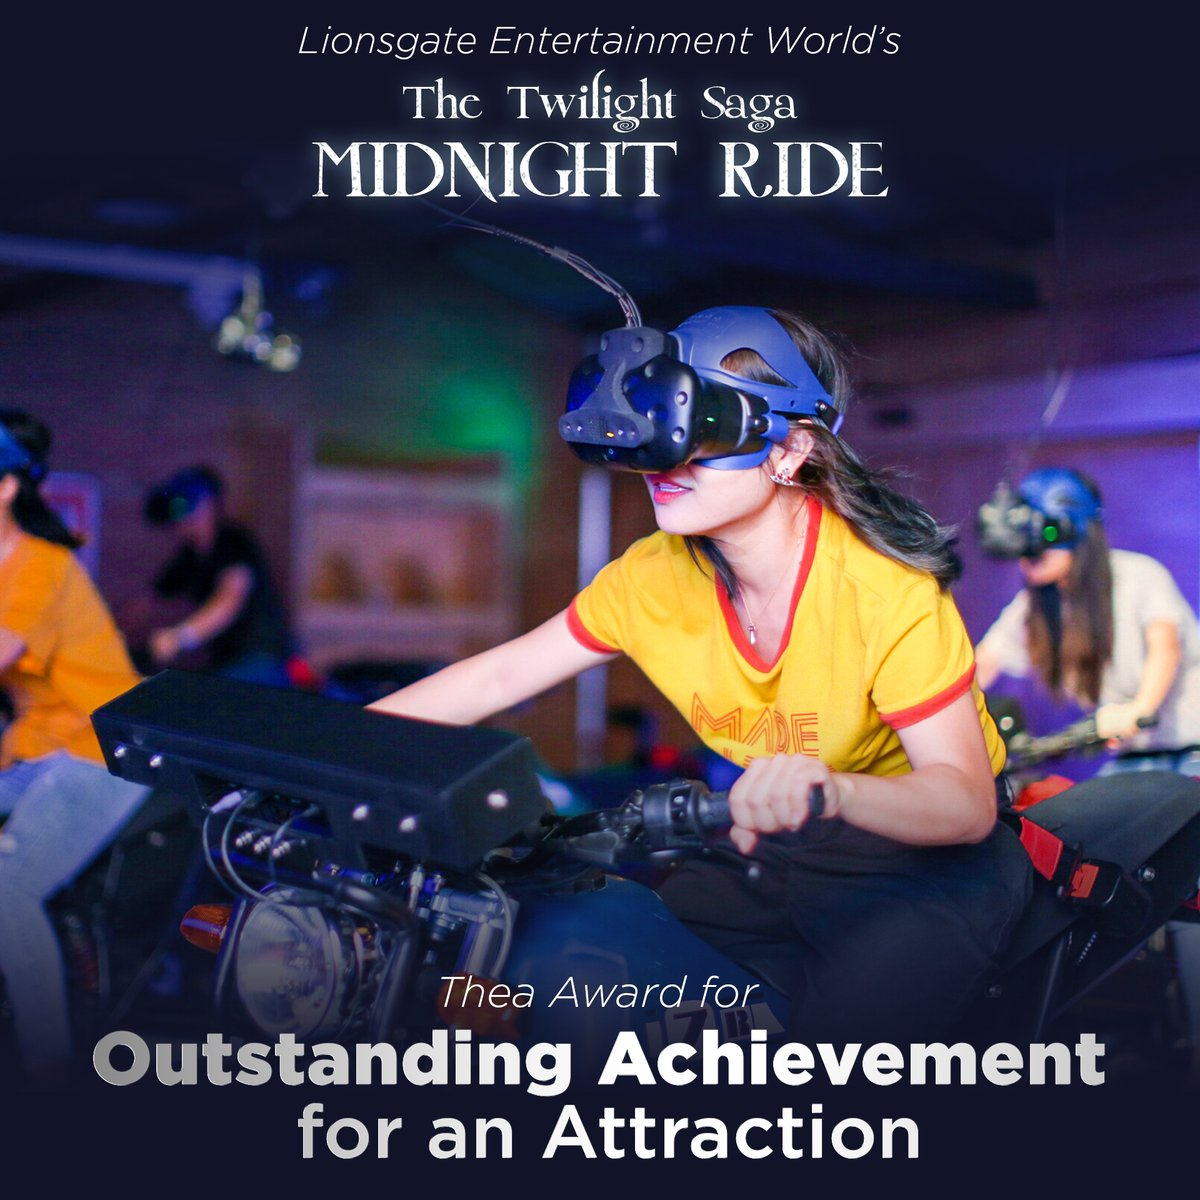 Hold on tight spider monkey! 👀 The #Twilight Saga: Midnight Ride at @Lionsgate Entertainment World just won a Thea Award!